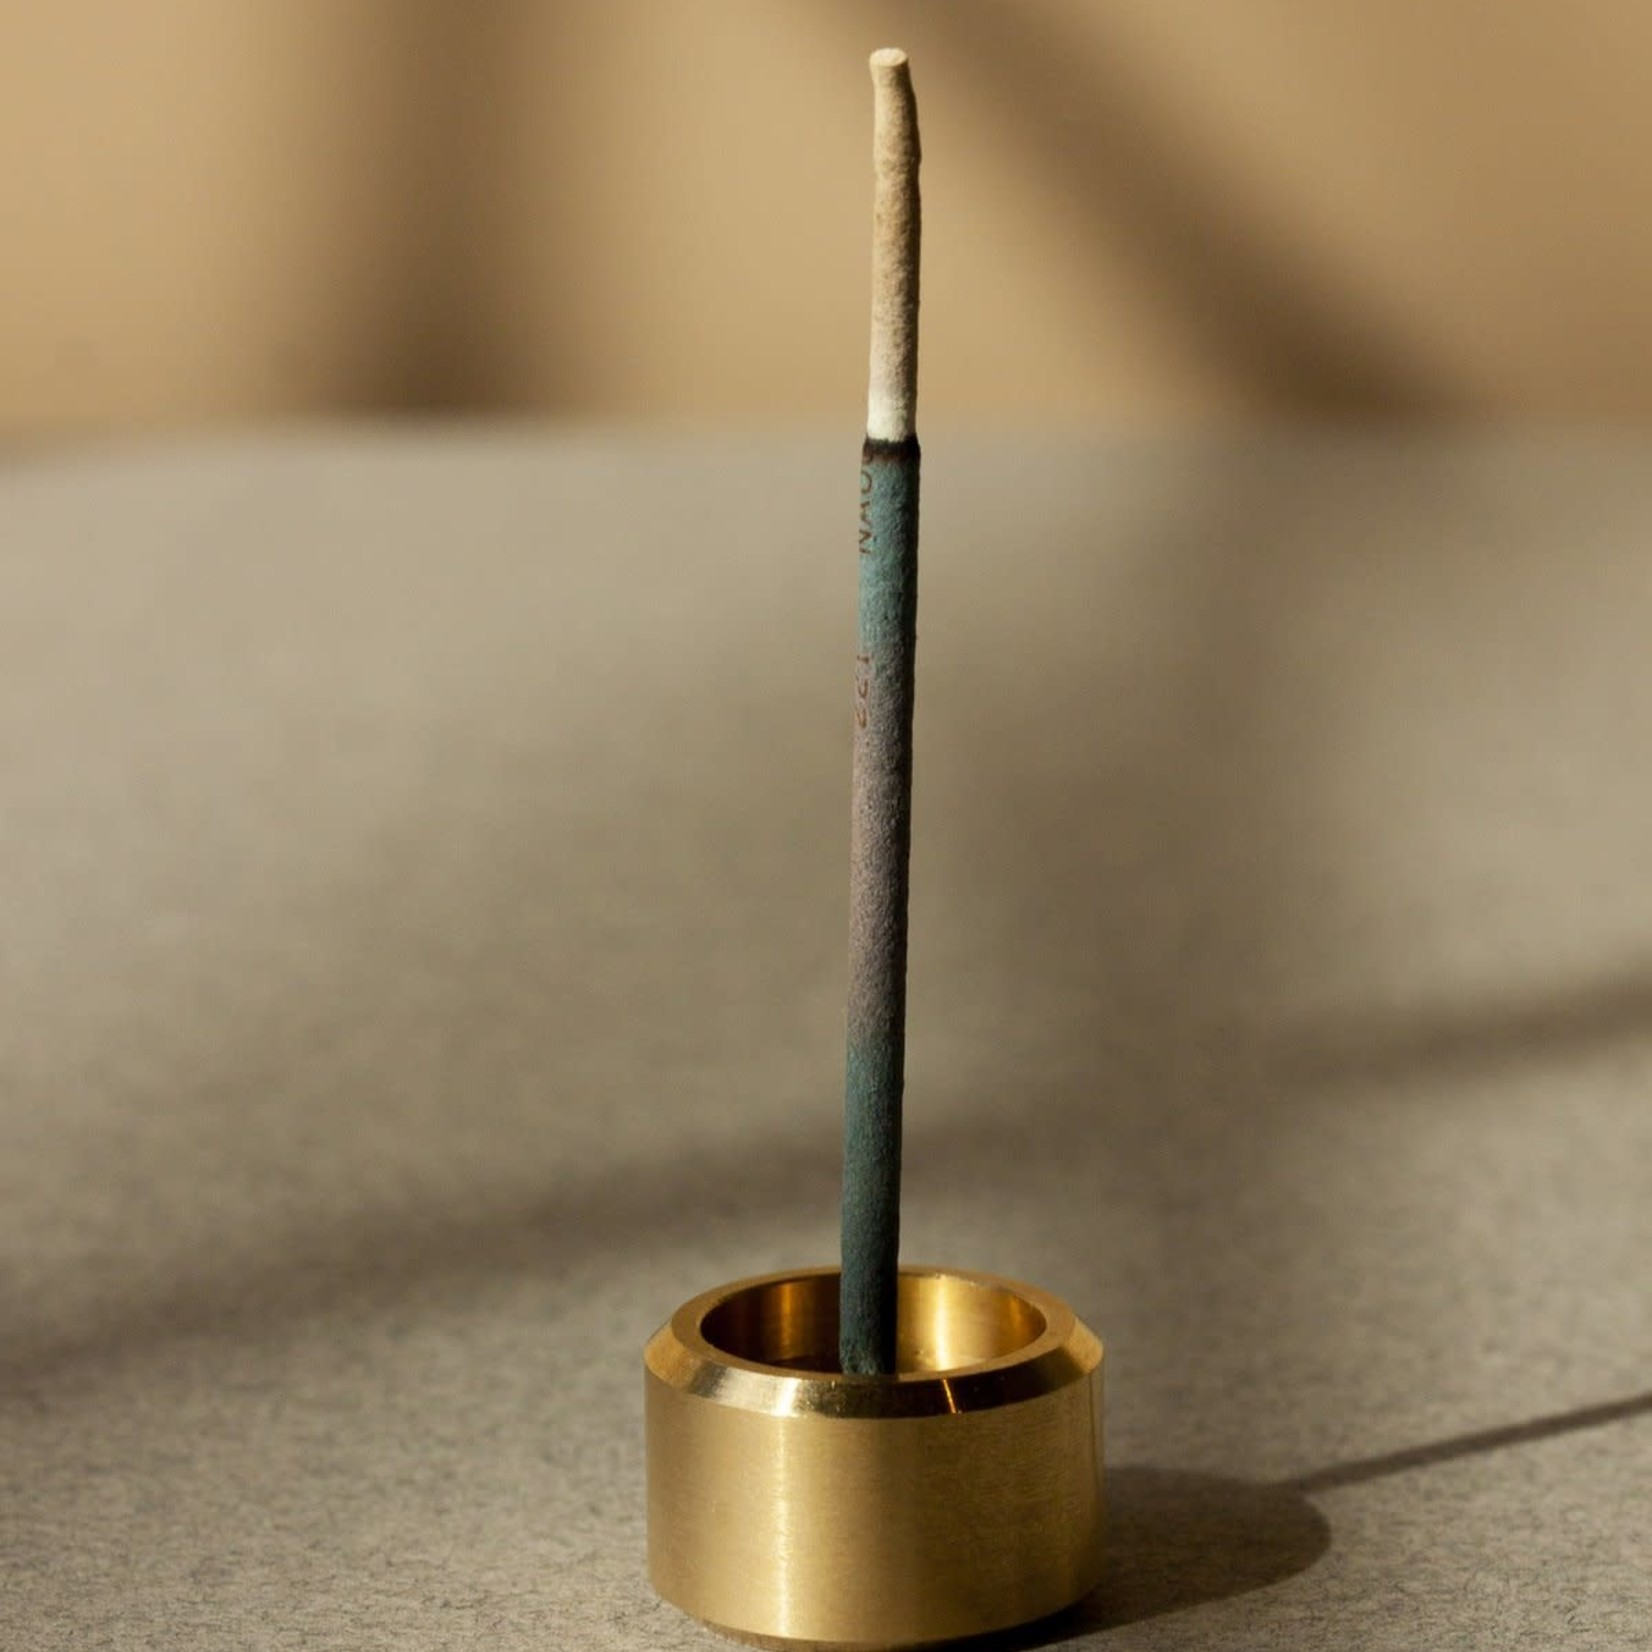 Craighill Craighill Incense Holder